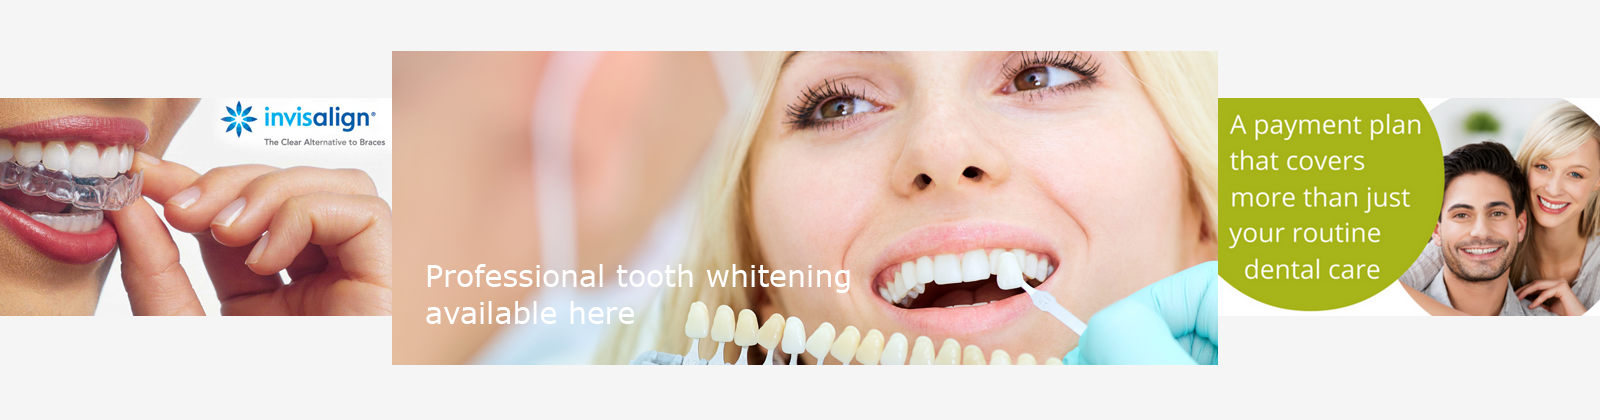 a dentist looking at a patients teeth for implants or whitening